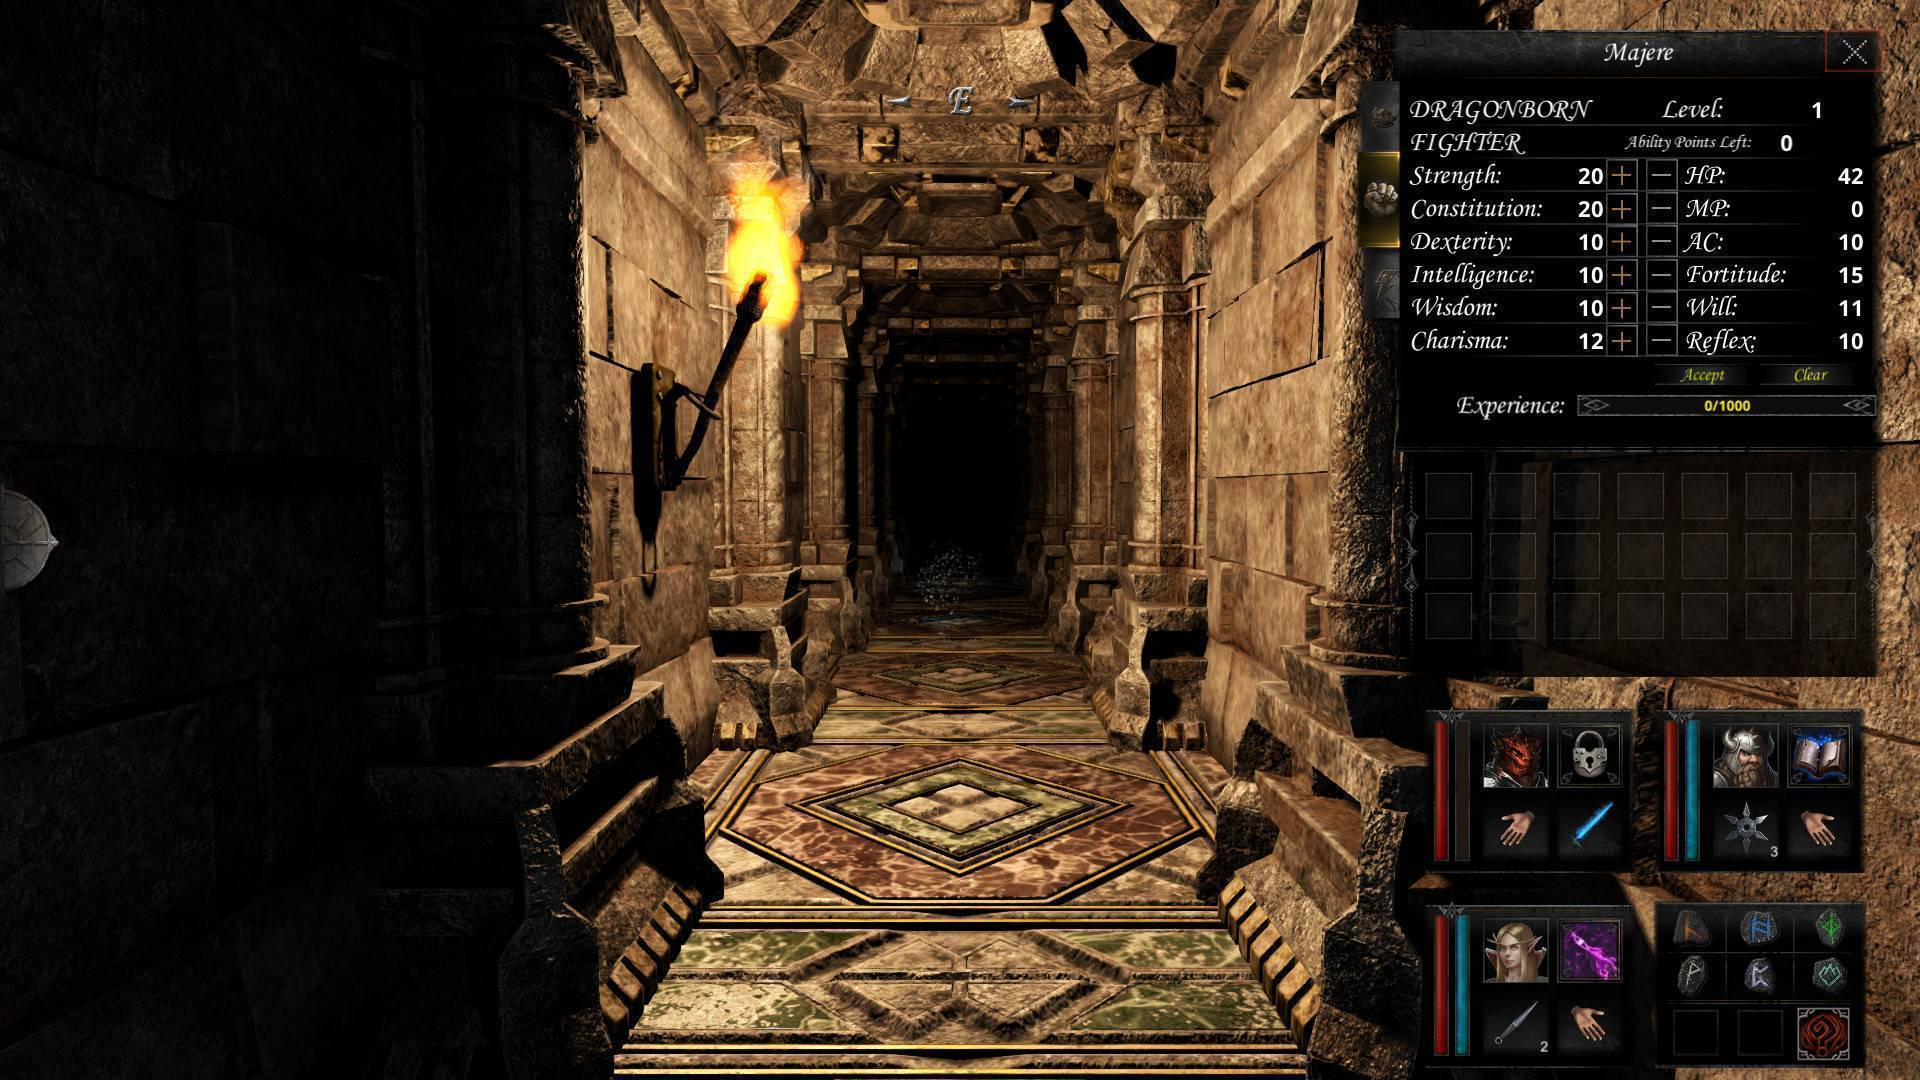 RPG old school : Dungeon Master, Eye Of Beholder, Grimrock.. - Page 7 Dungeon-of-dragon-knight-pc-cd-key-2